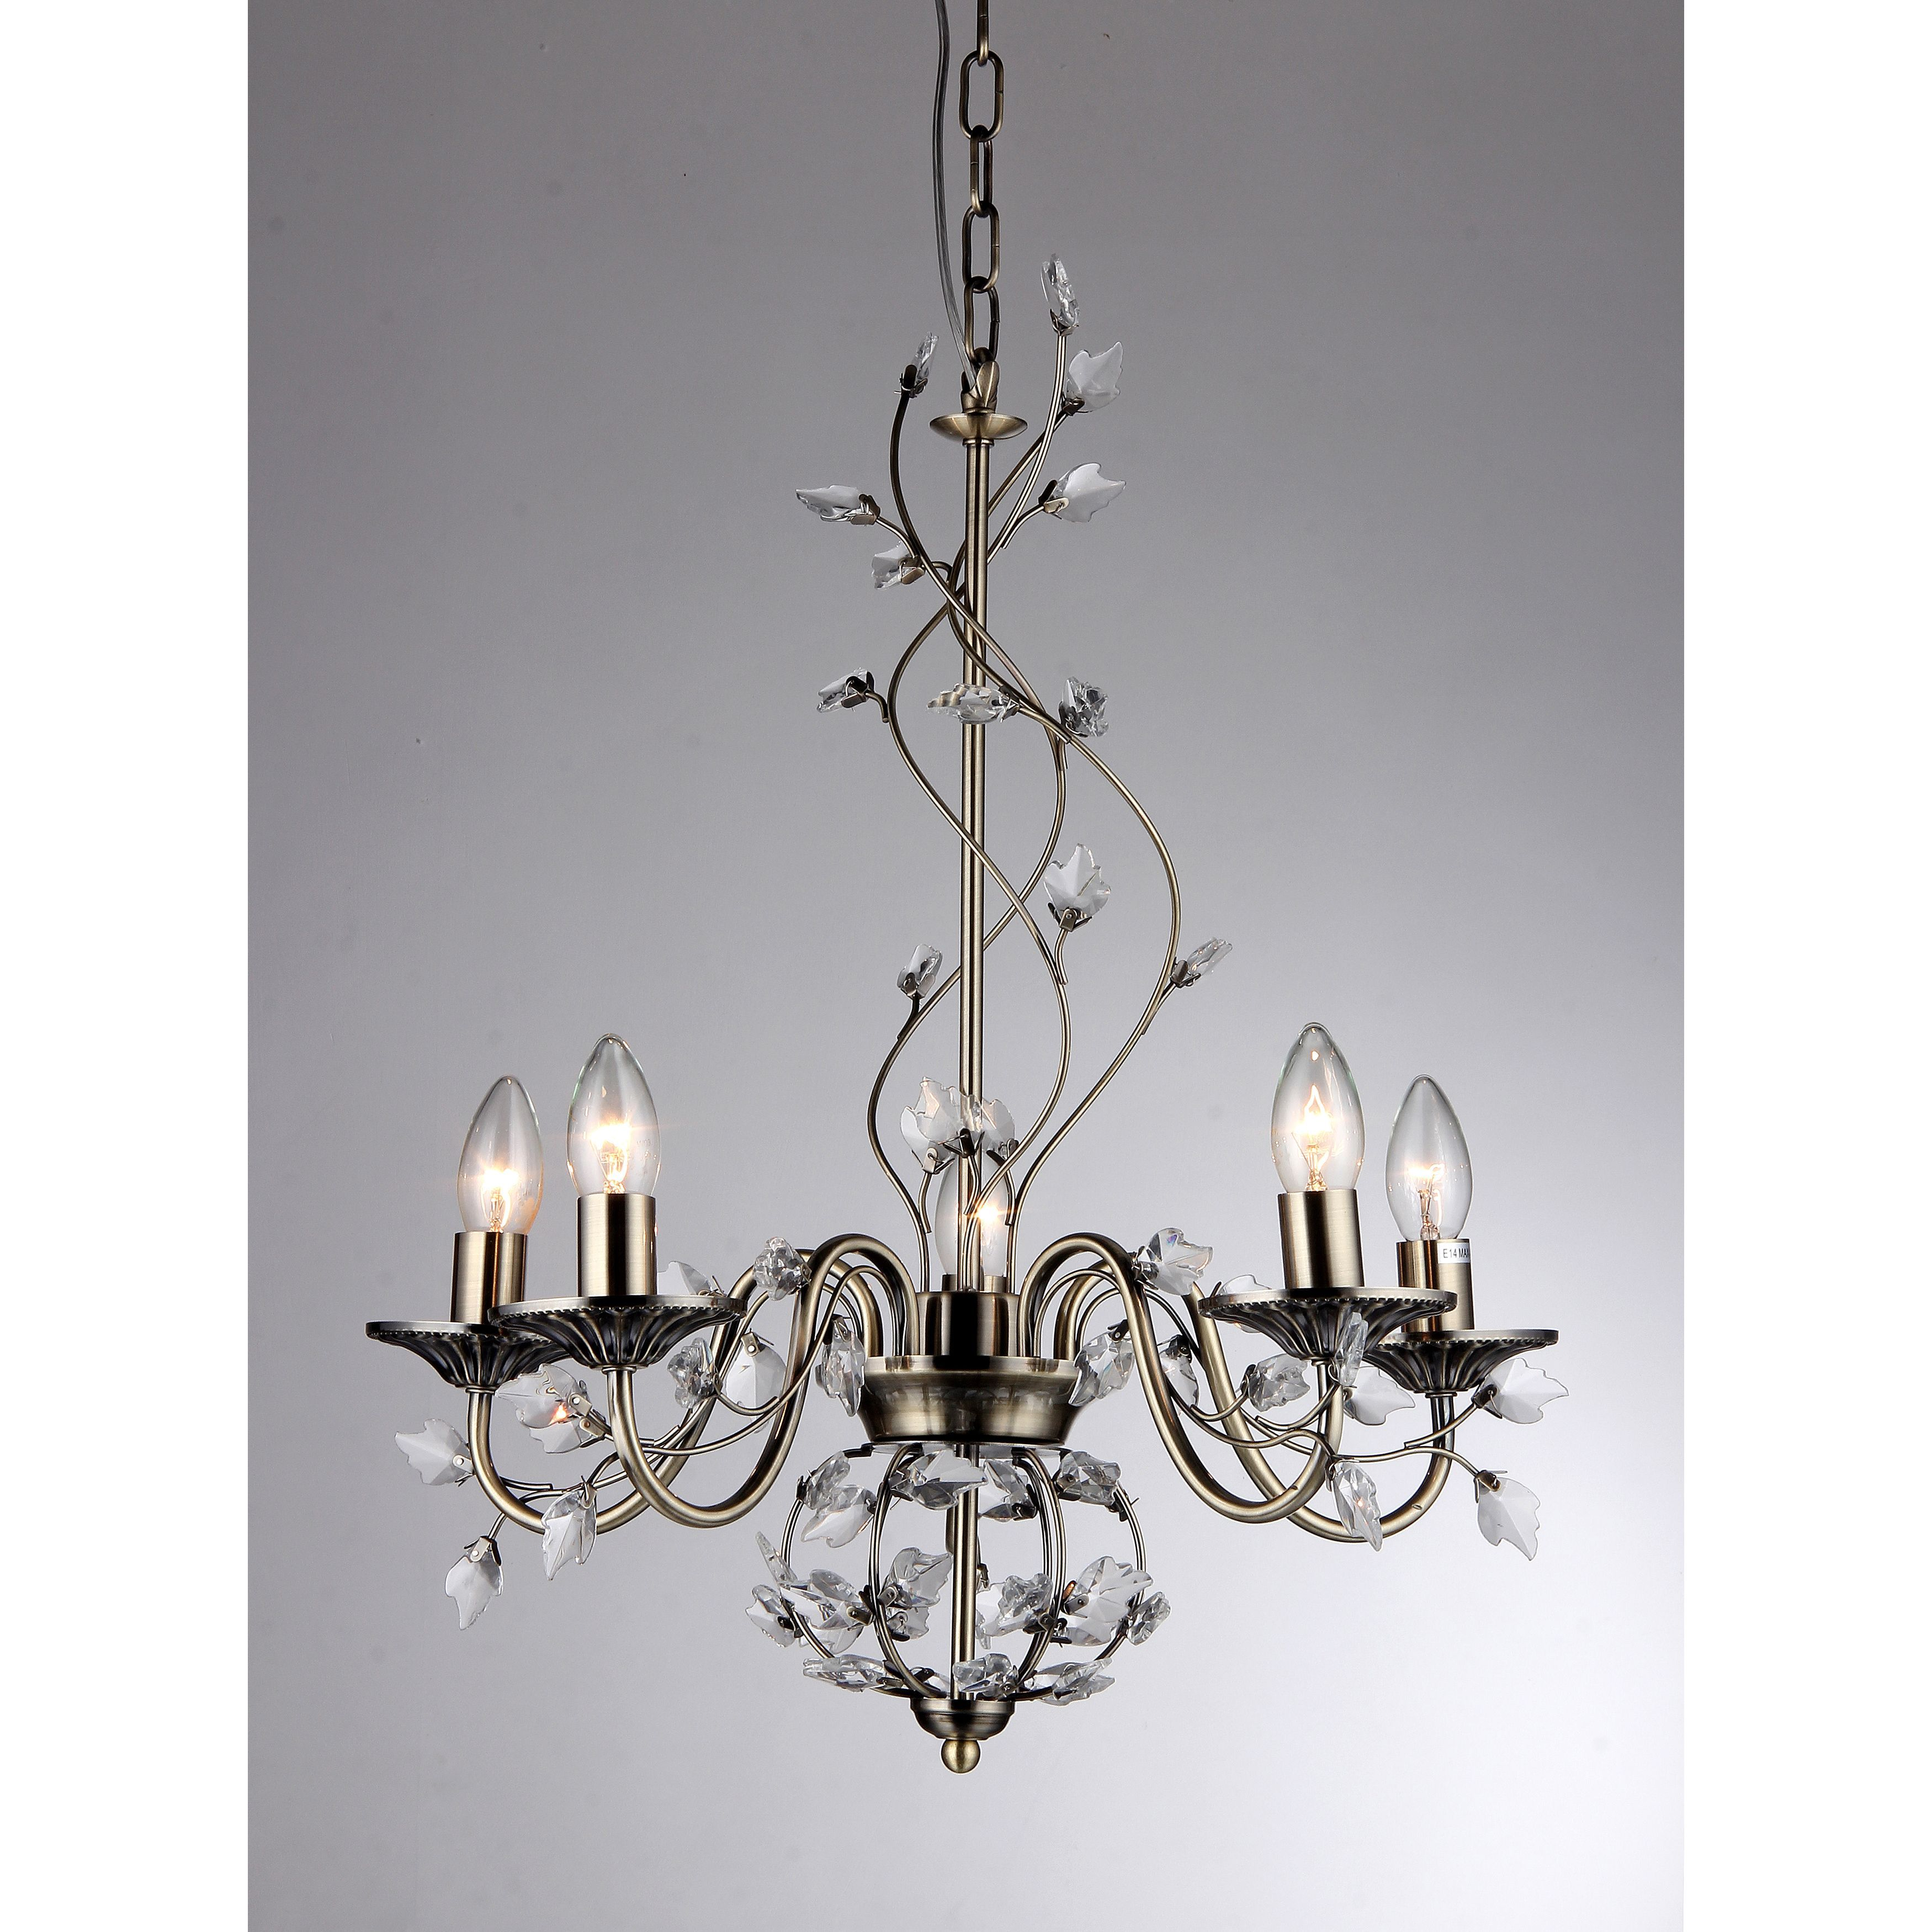 Charlotte 5 light Bronze 20 inch Crystal Branches Chandelier by